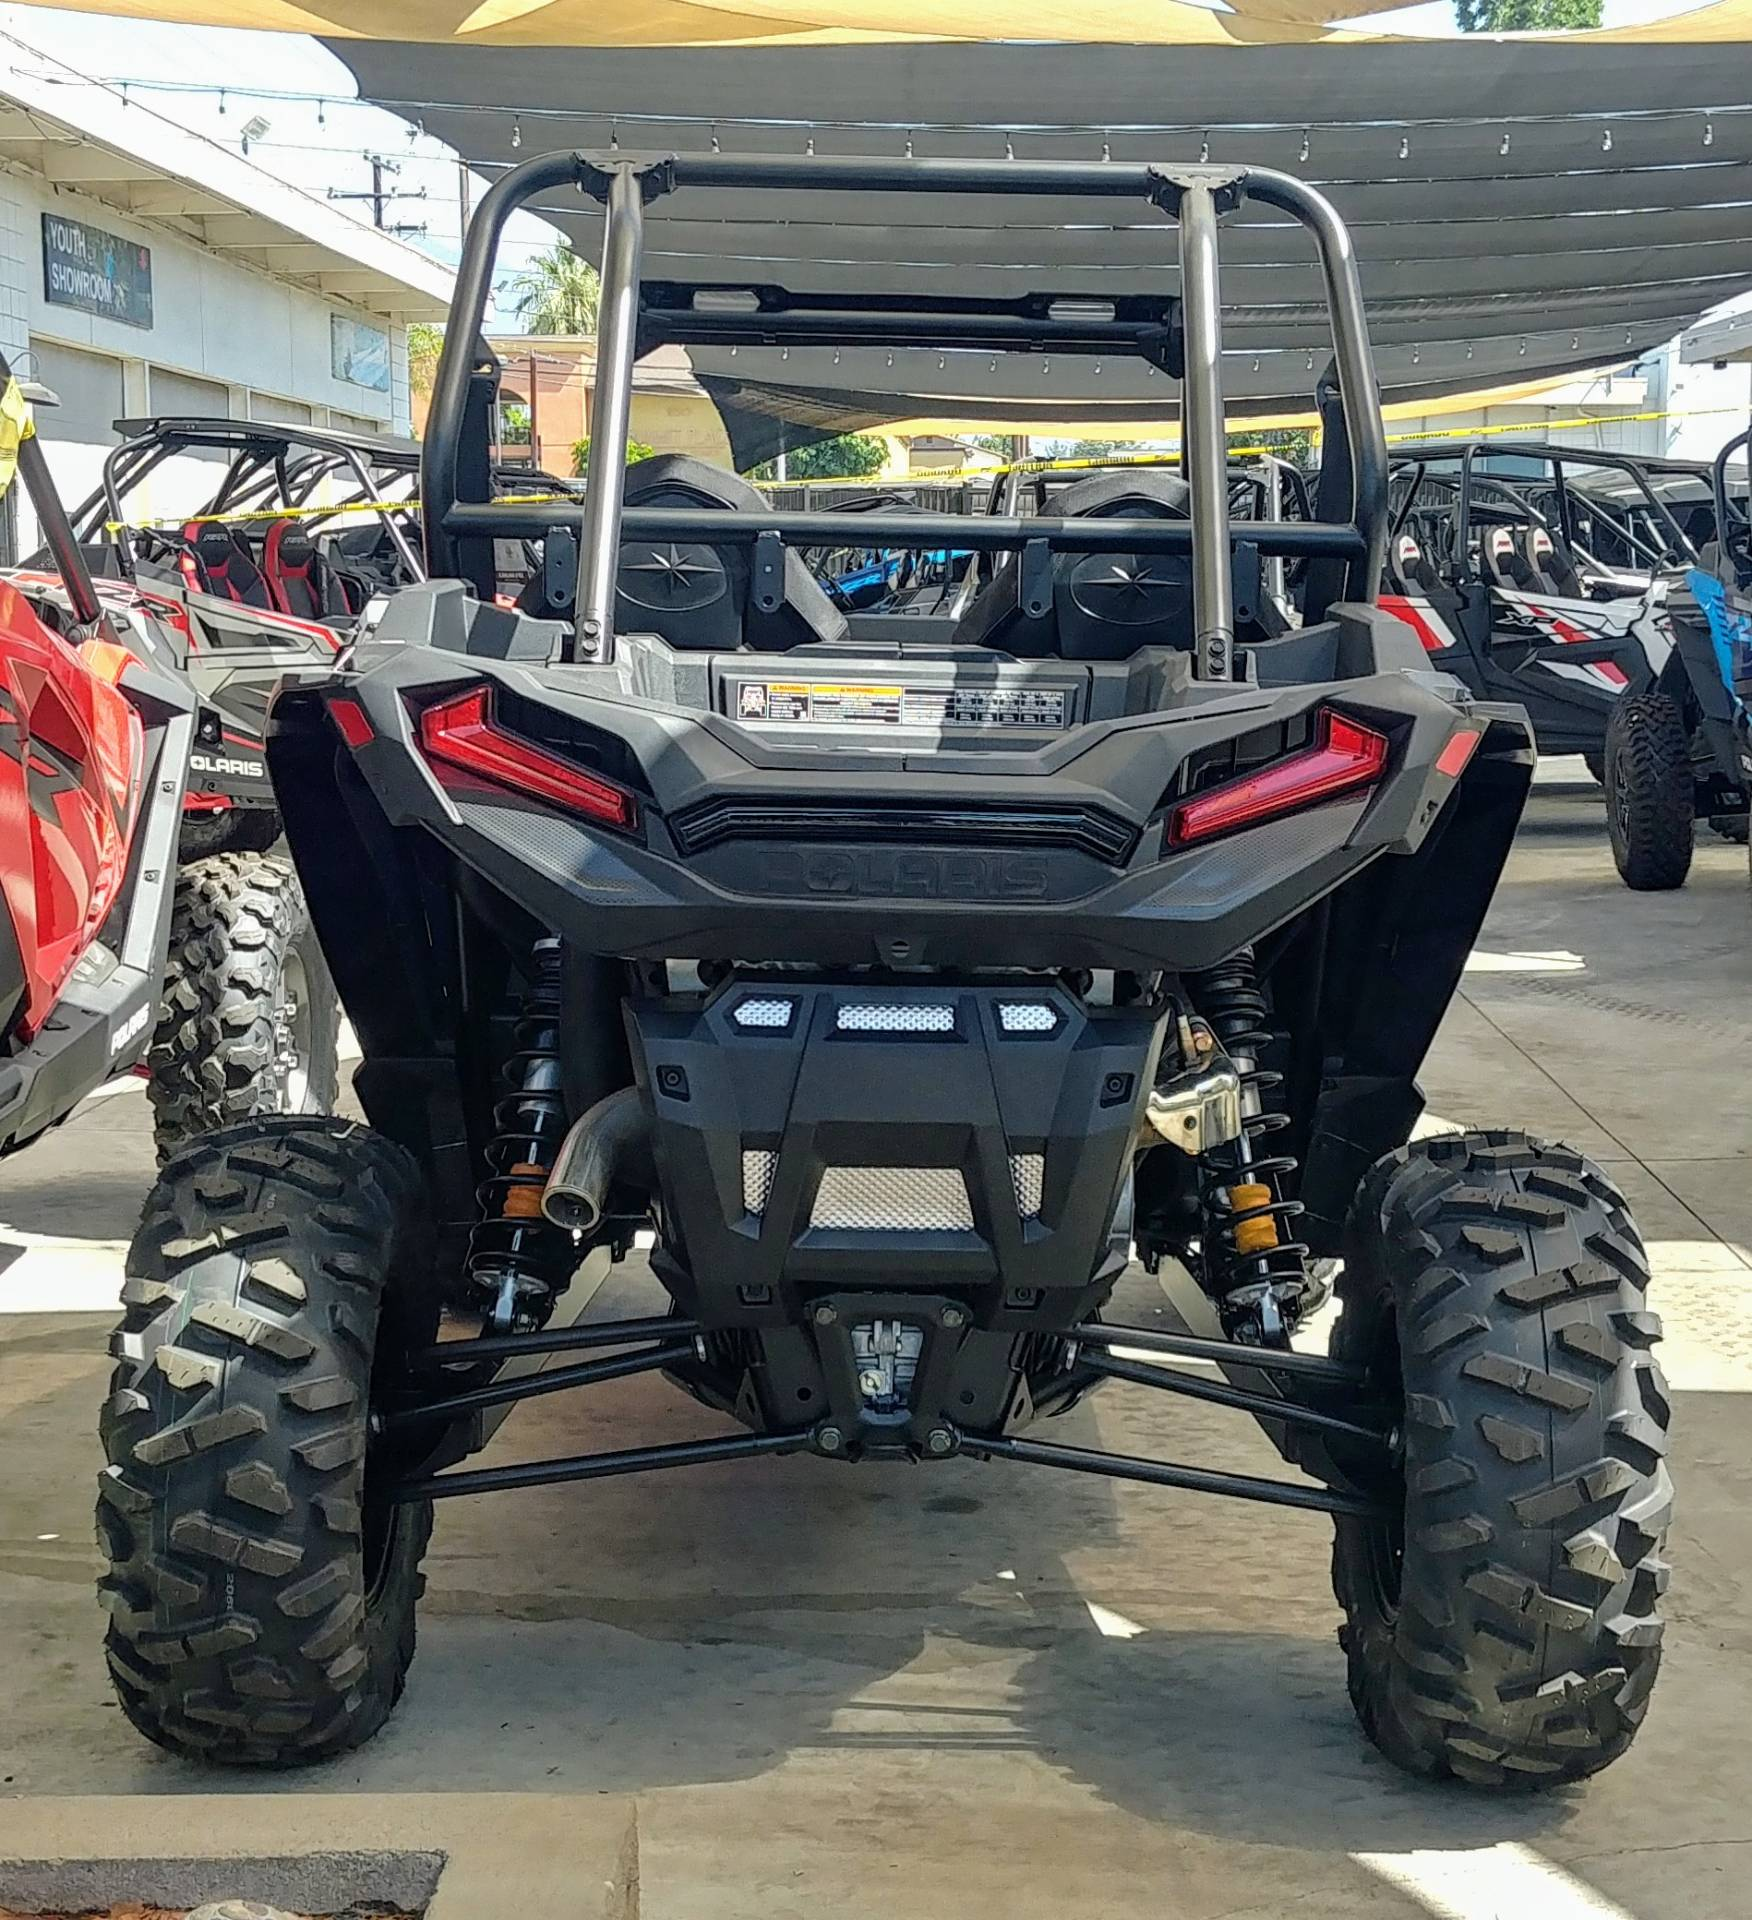 2021 Polaris RZR XP 1000 Sport in Ontario, California - Photo 7